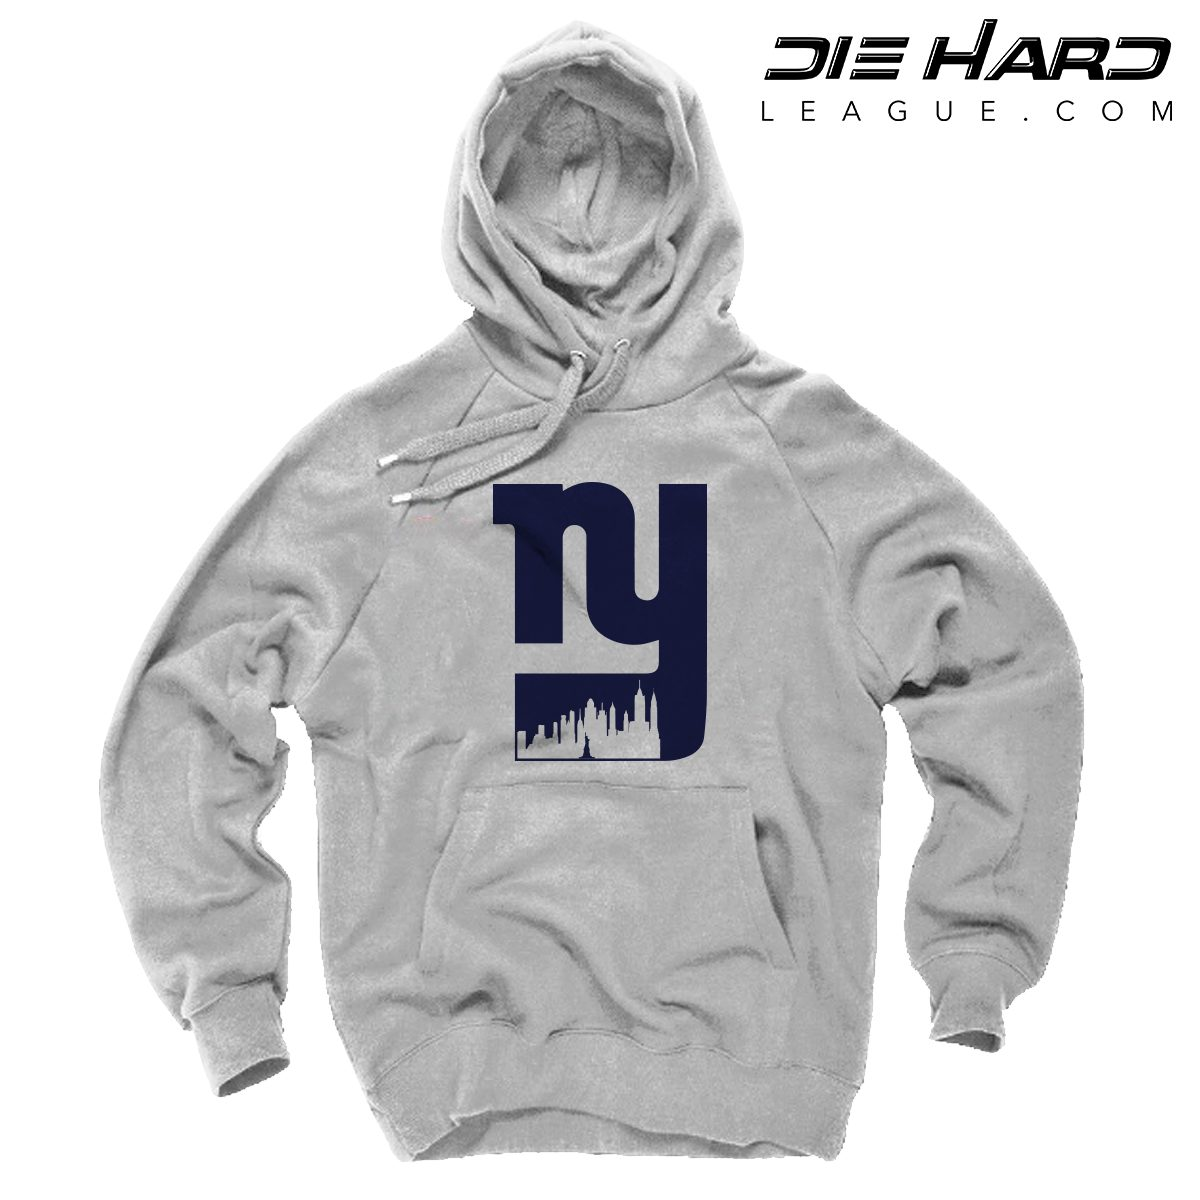 size 40 f2663 6eabd NY Giants Hoodie - New York Giants Alternate City Logo White Hoodie